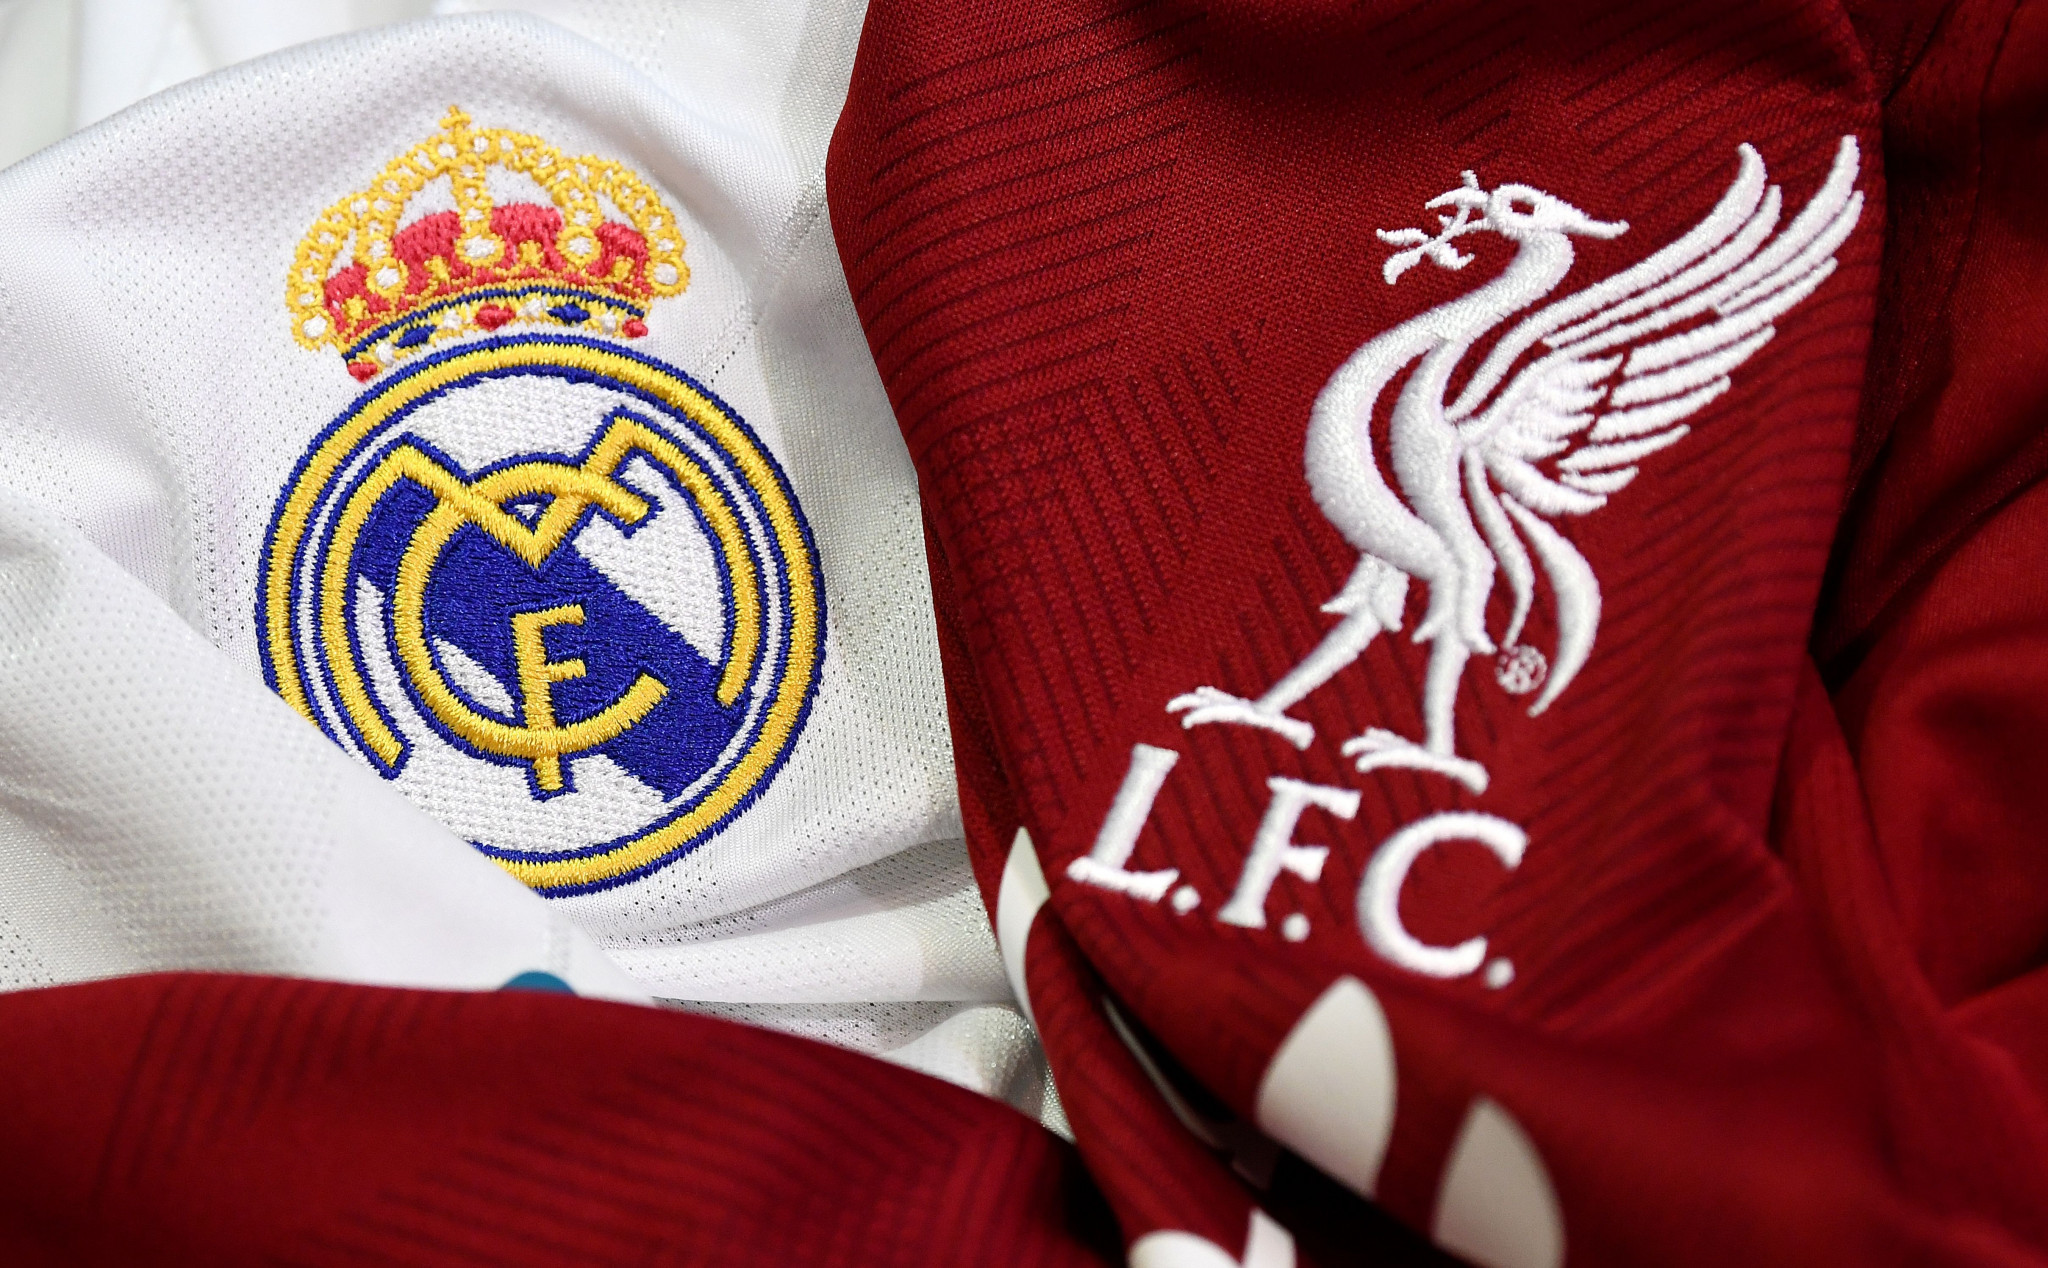 Clubs including Real Madrid and Liverpool have angered UEFA by signing up for The Super League ©Getty Images